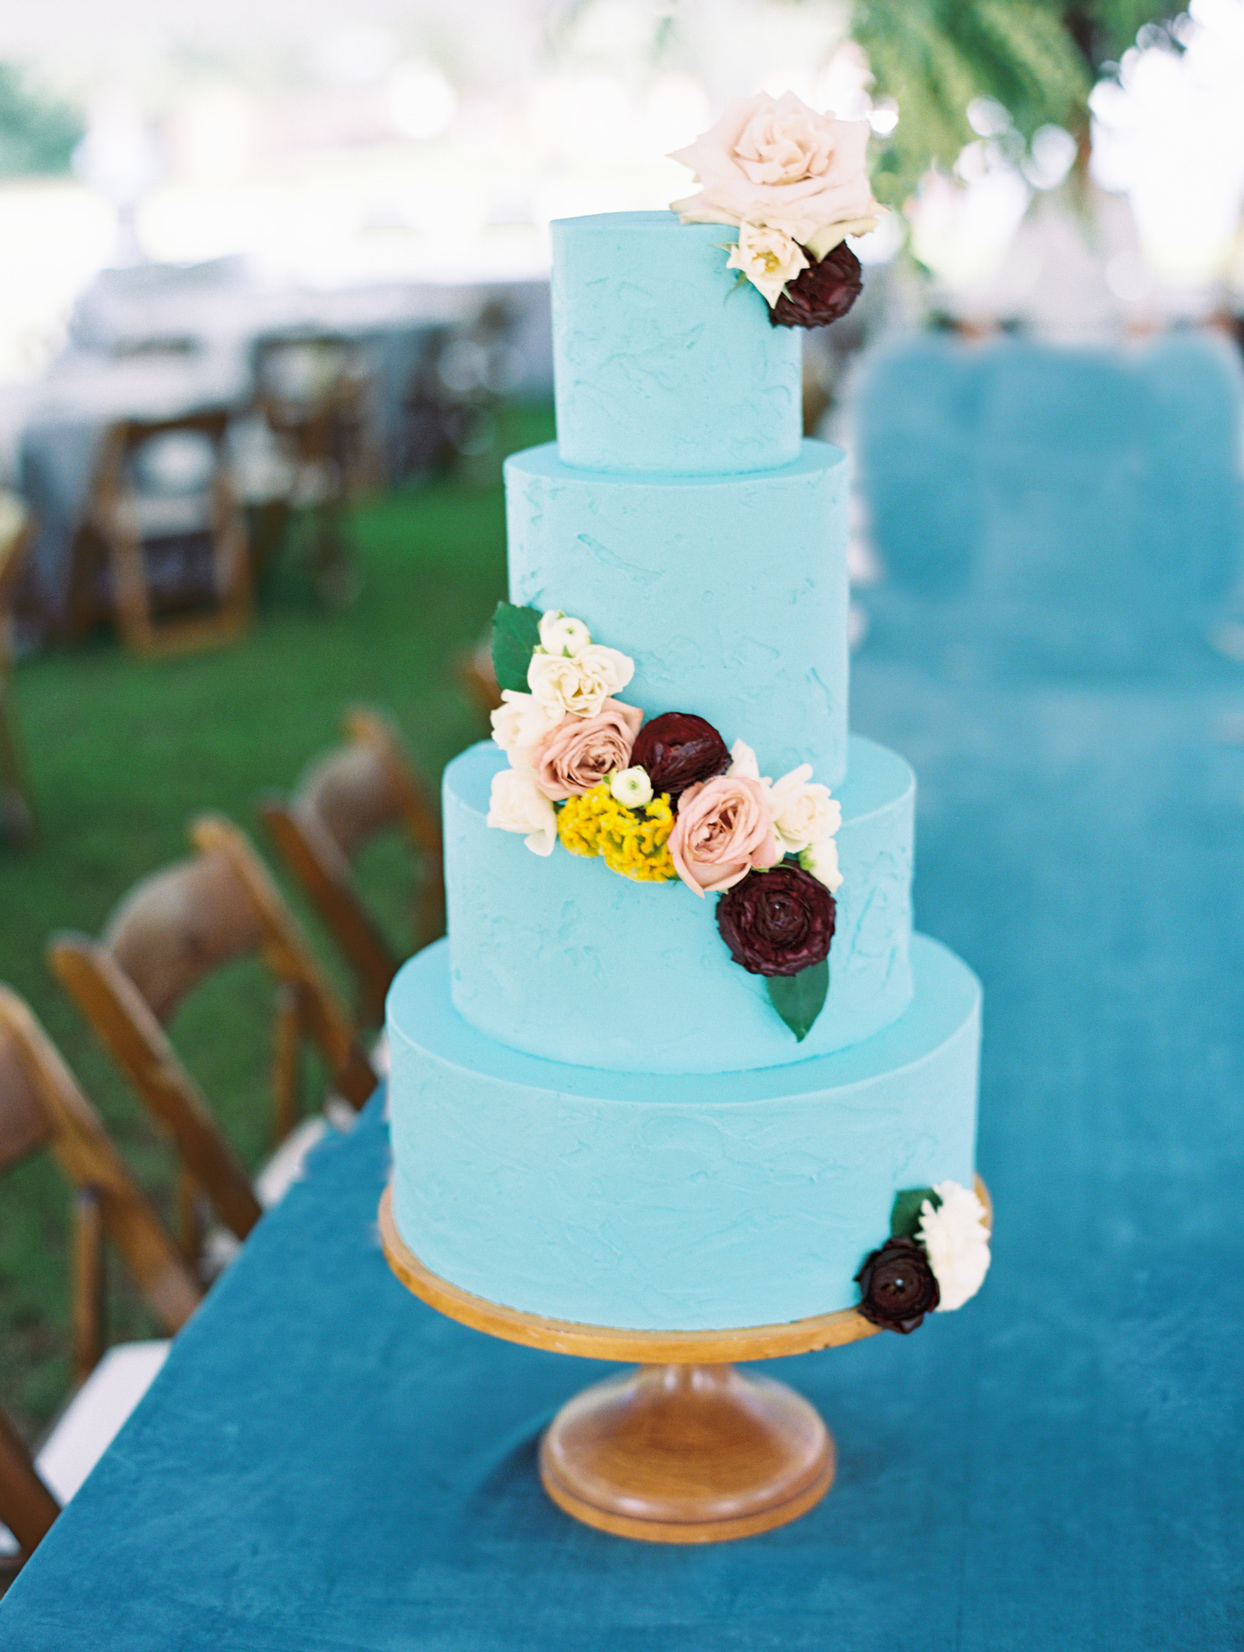 Four tiered blue wedding cake with flowers